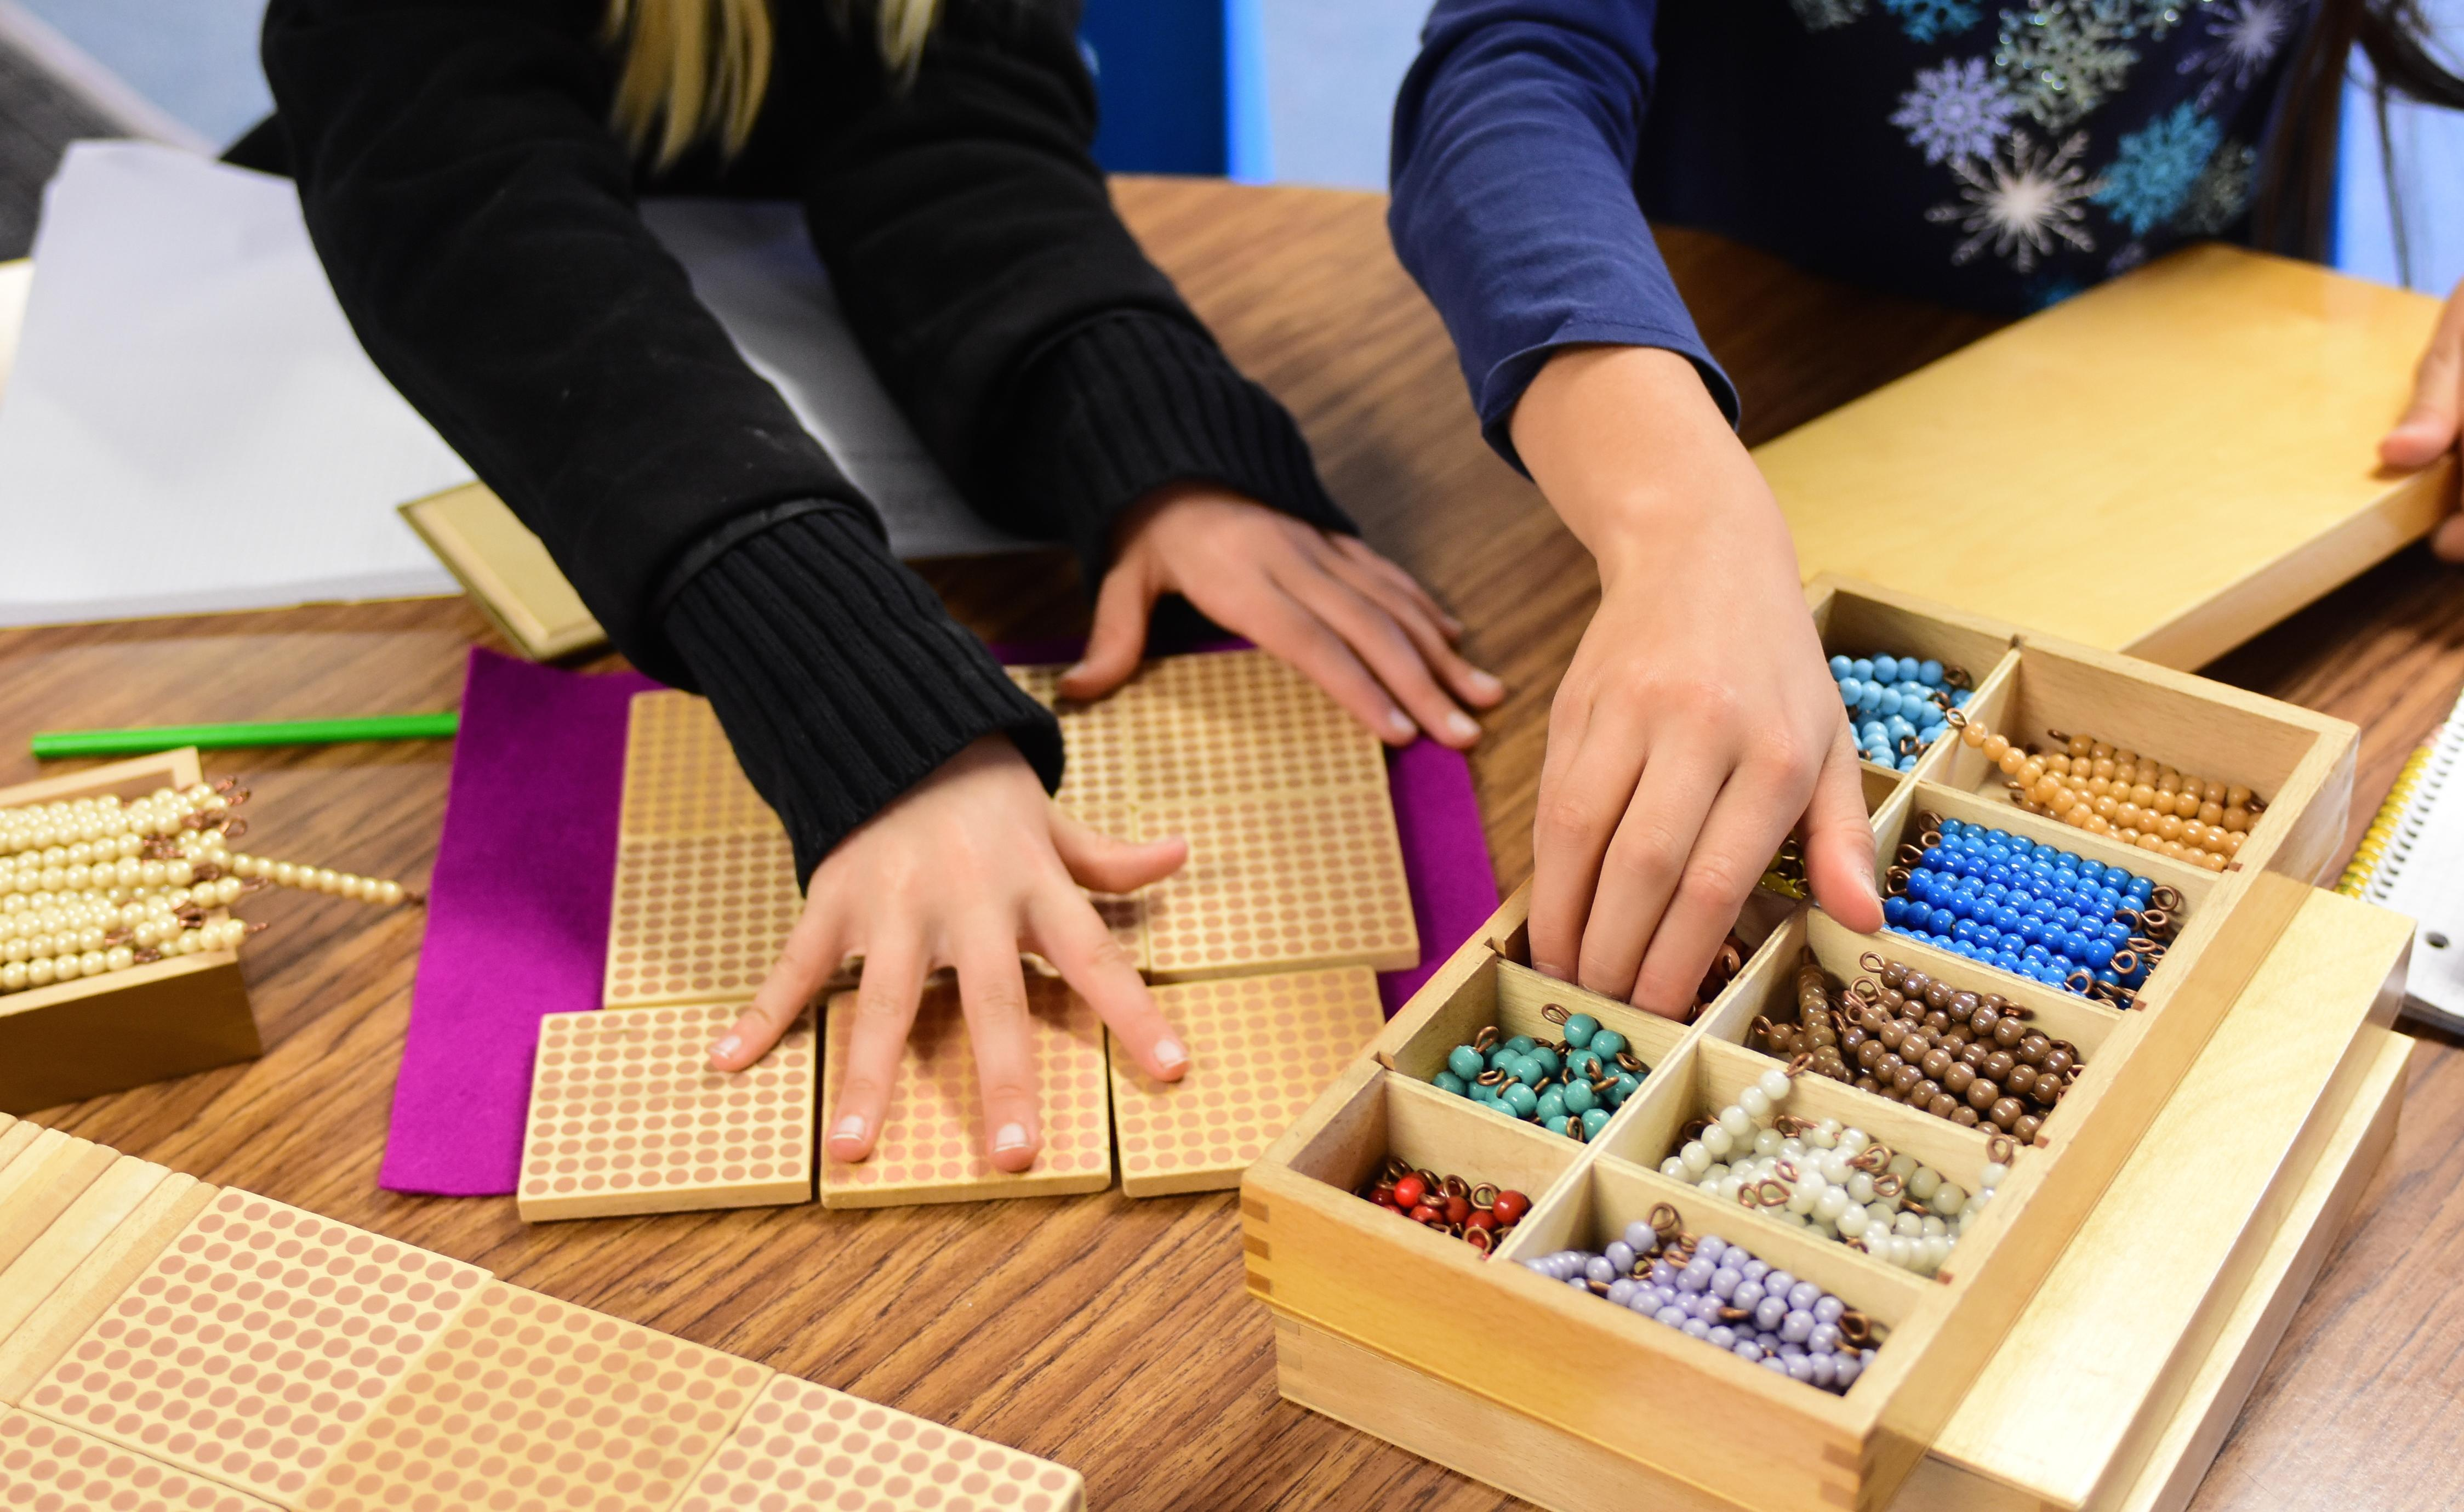 For a dynamic education for your child with our award-winning programs, stop by Mountain Shadows Montessori School on 63rd Street today or call (303) 530-5353 to schedule a tour.